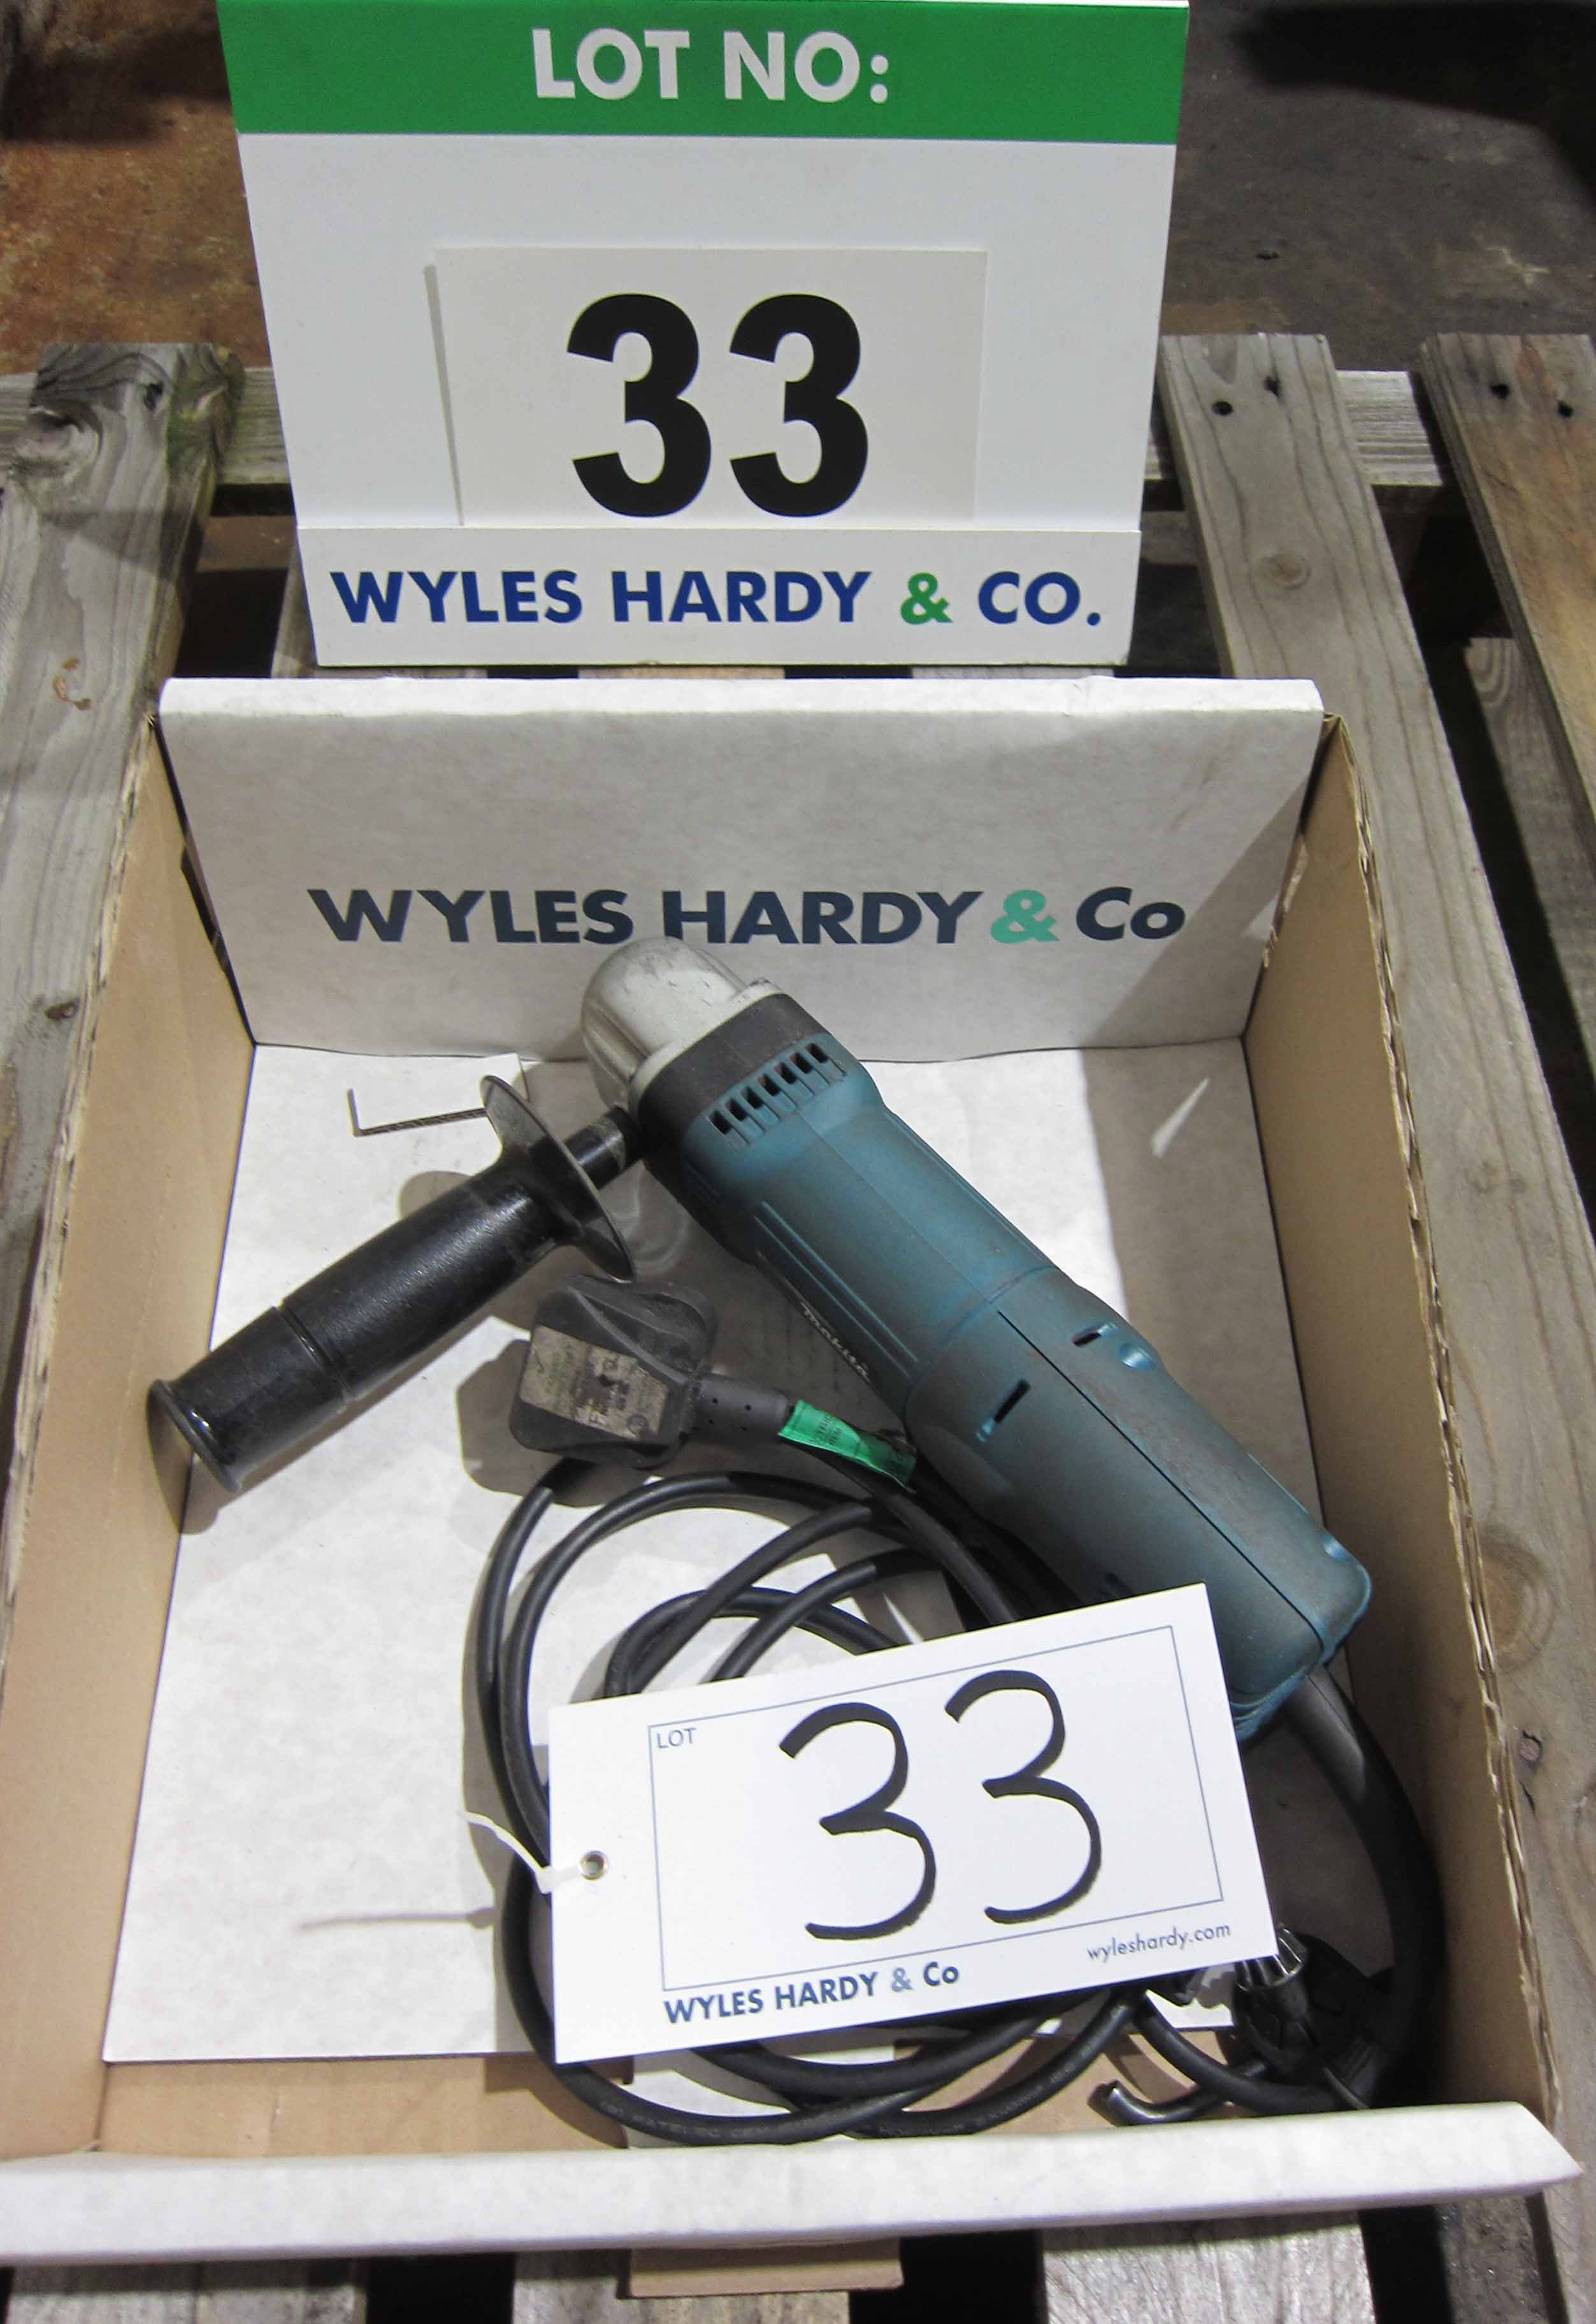 A MAKITA Model DA3010 240V 90 Degree Drill, Max. 10mm dia.